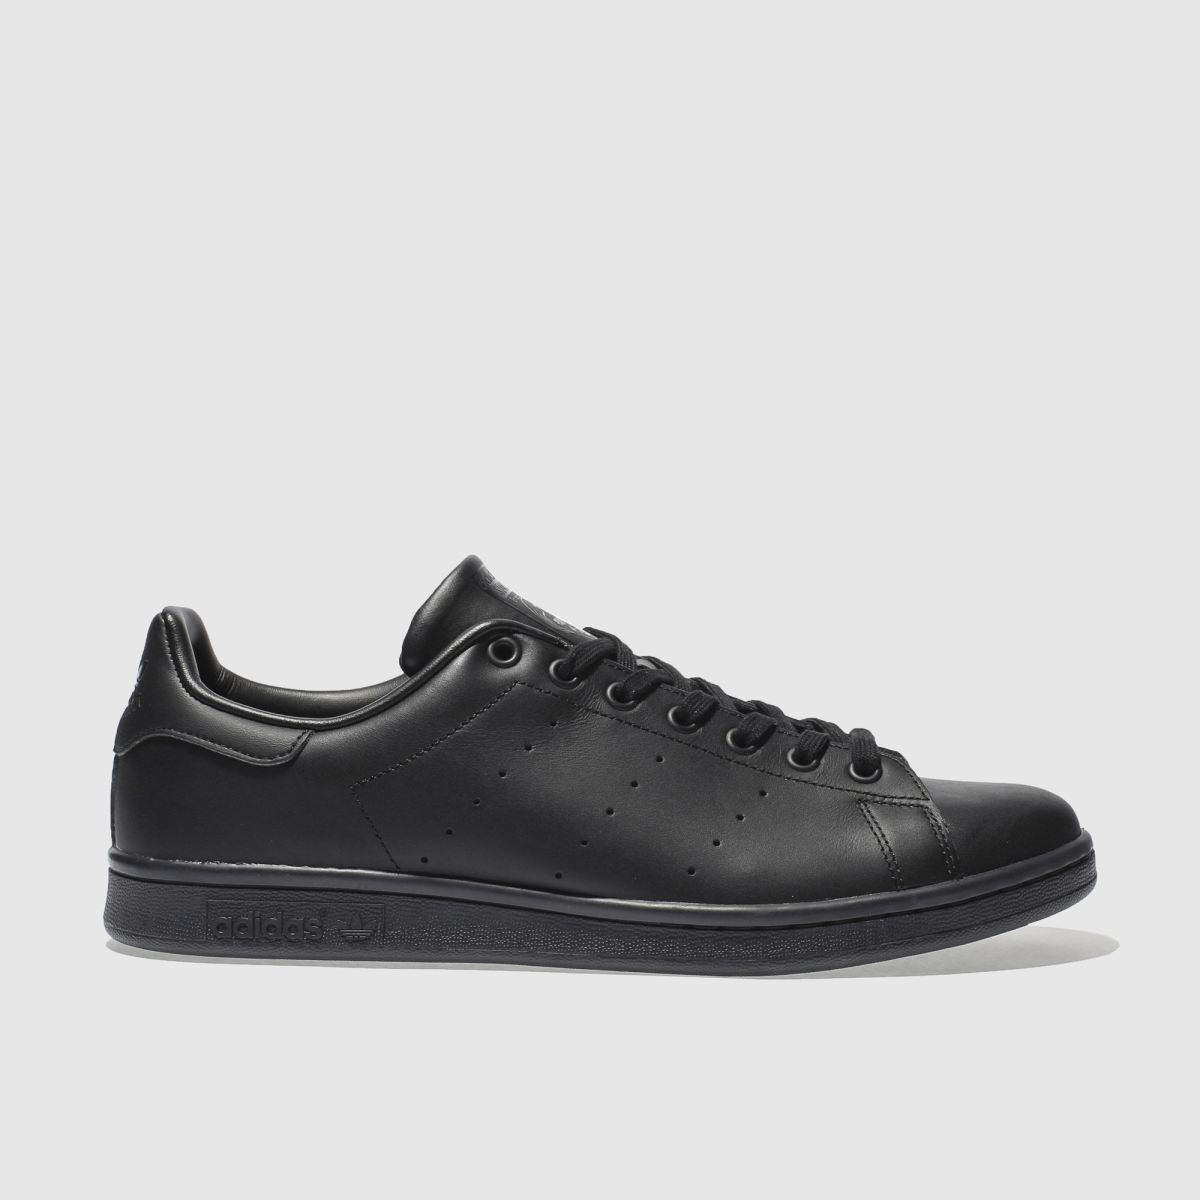 Adidas Stan Smith All Black